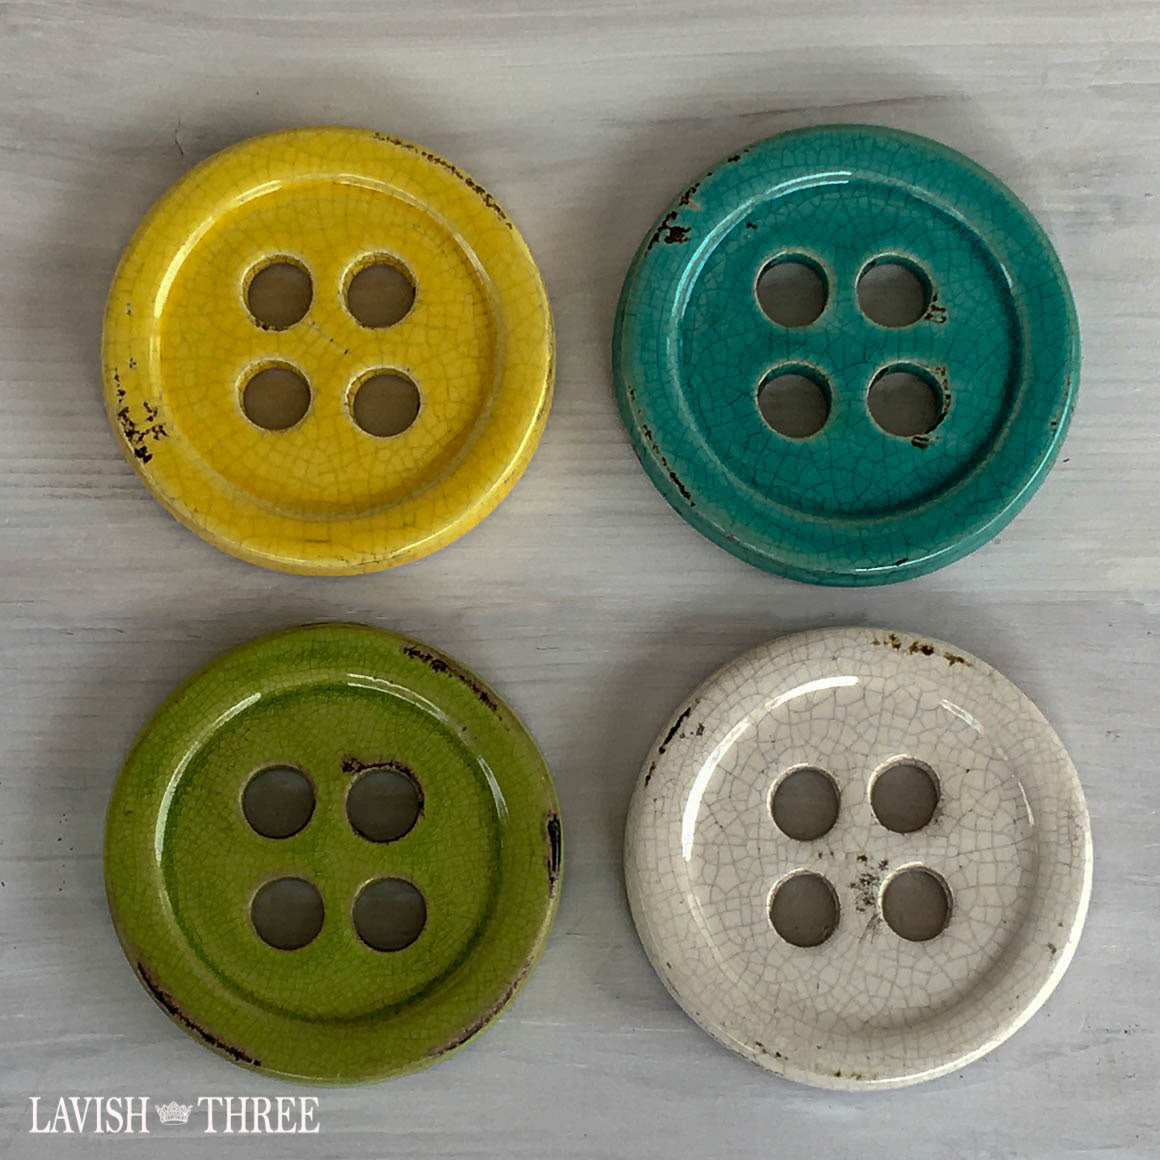 Coaster set buttons blue green yellow white lavish three 3